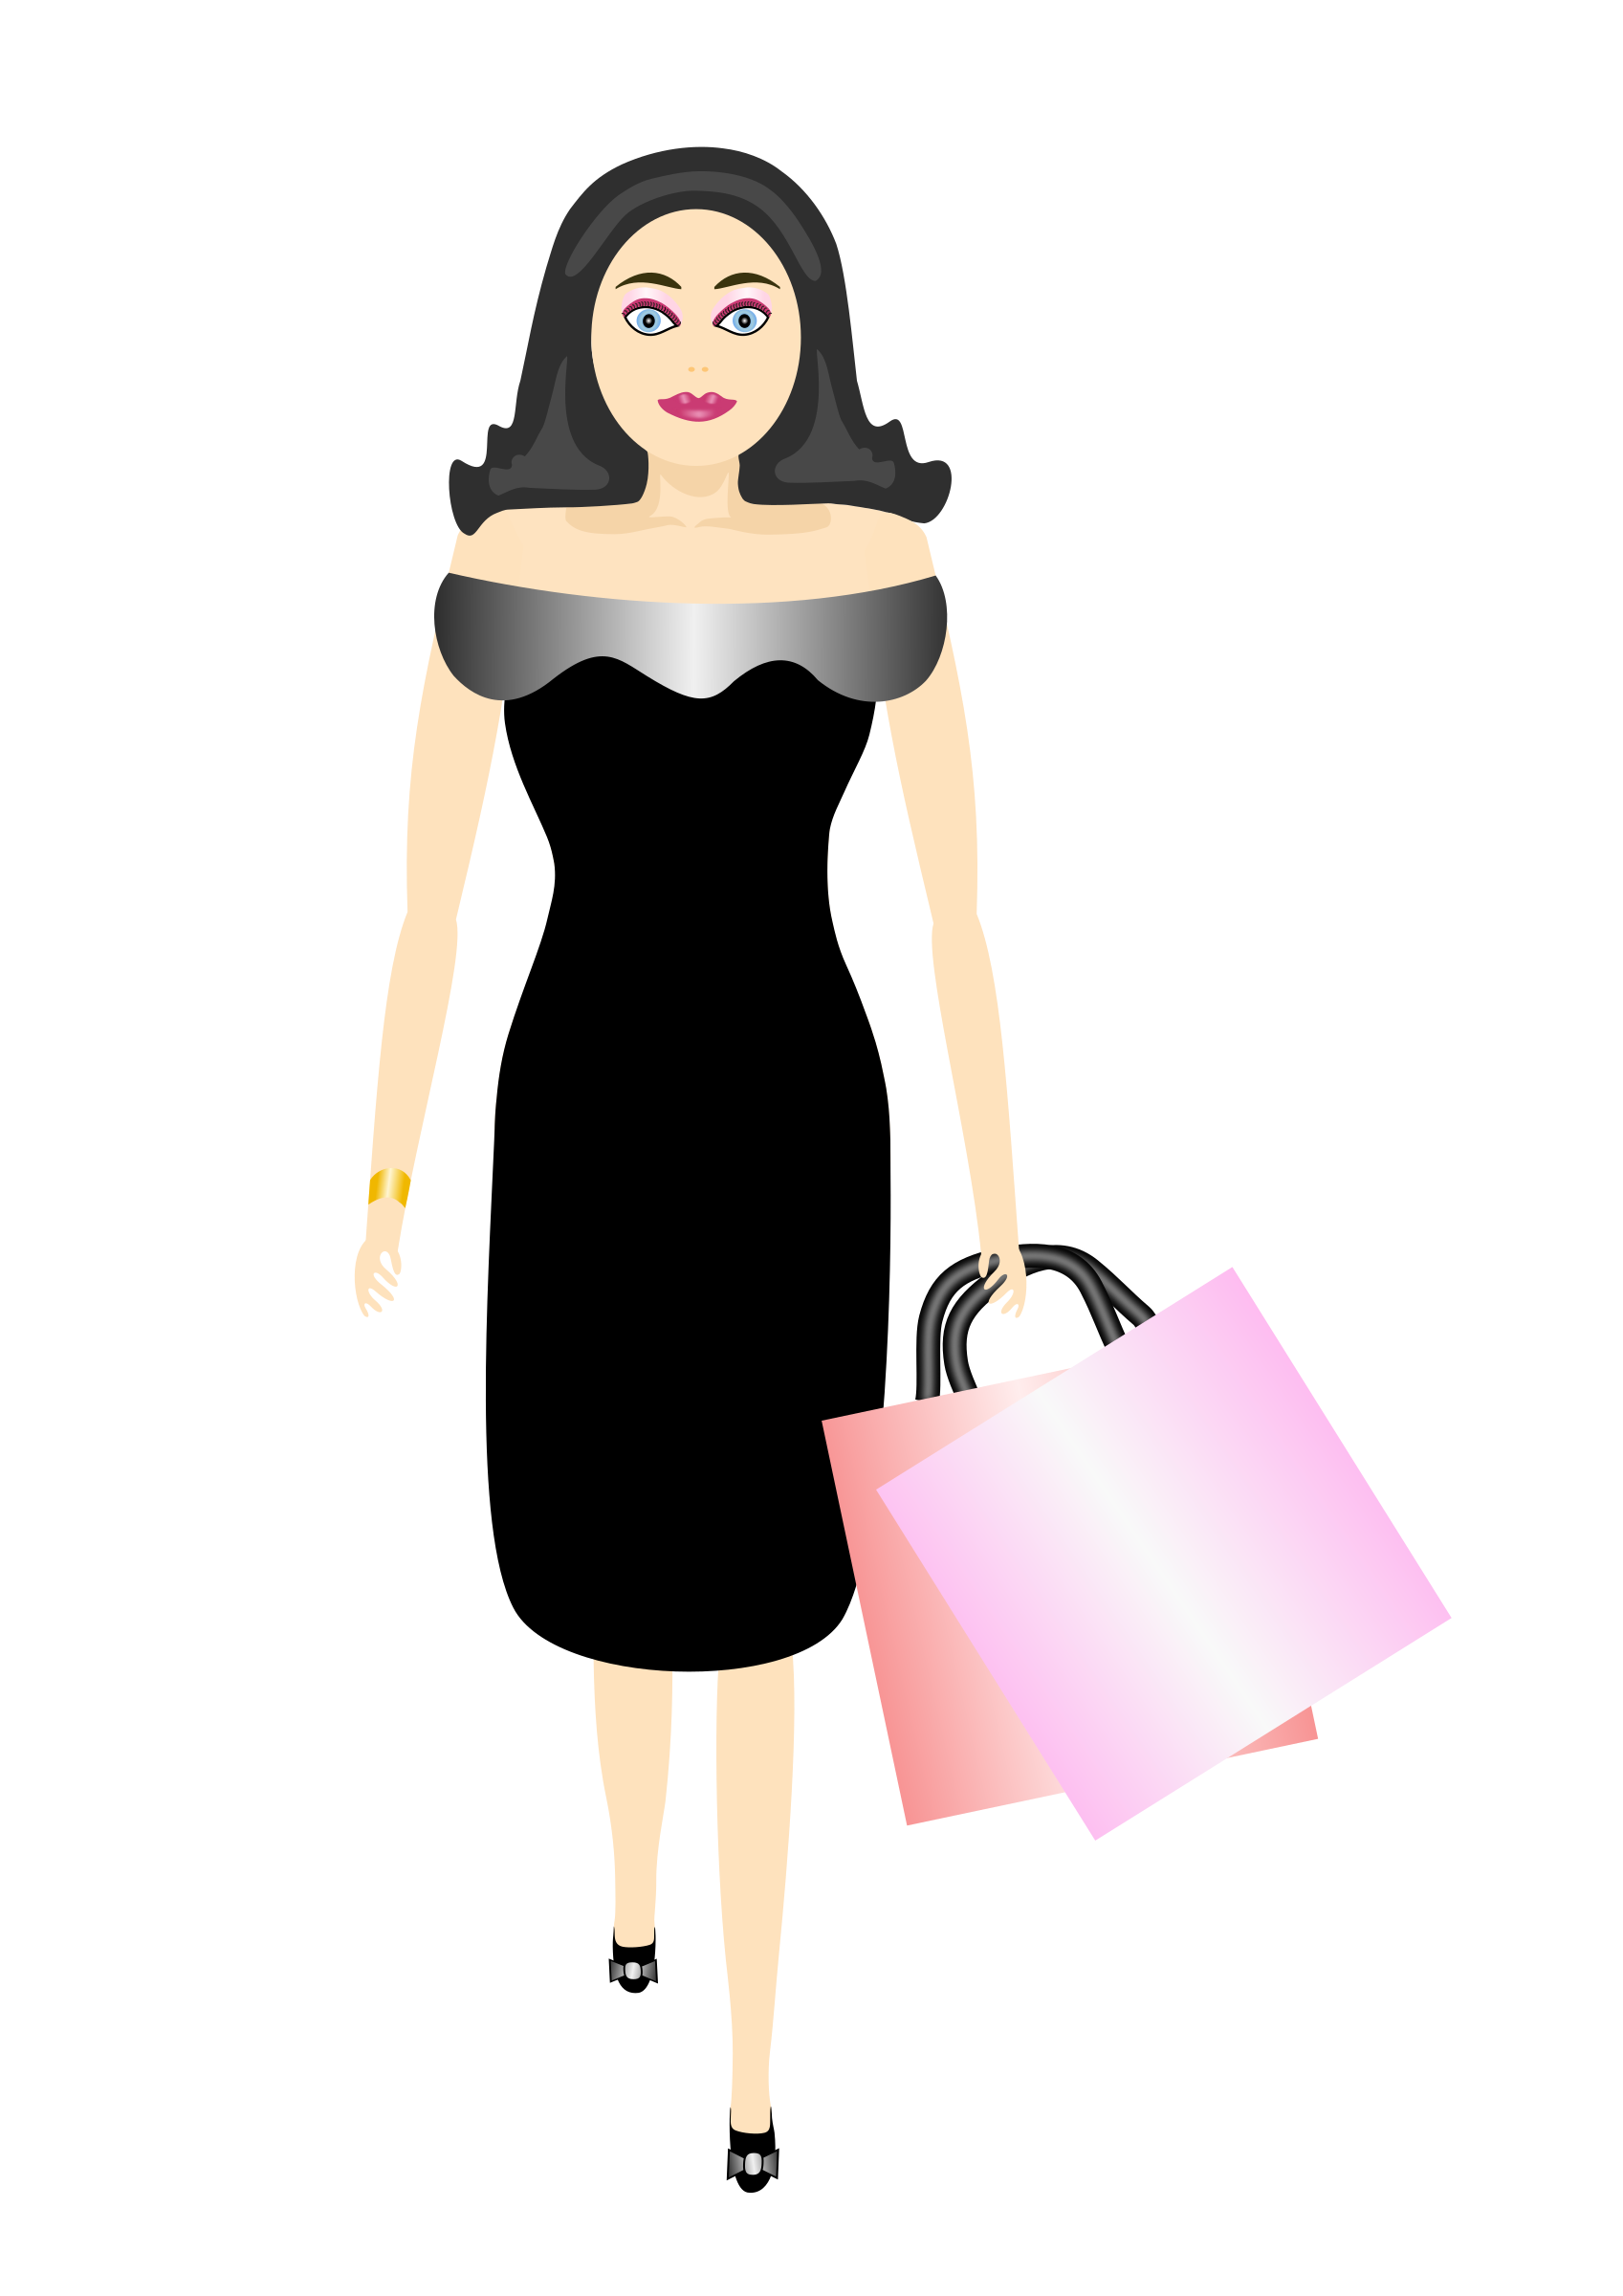 glamour girl shopping by Artmaker